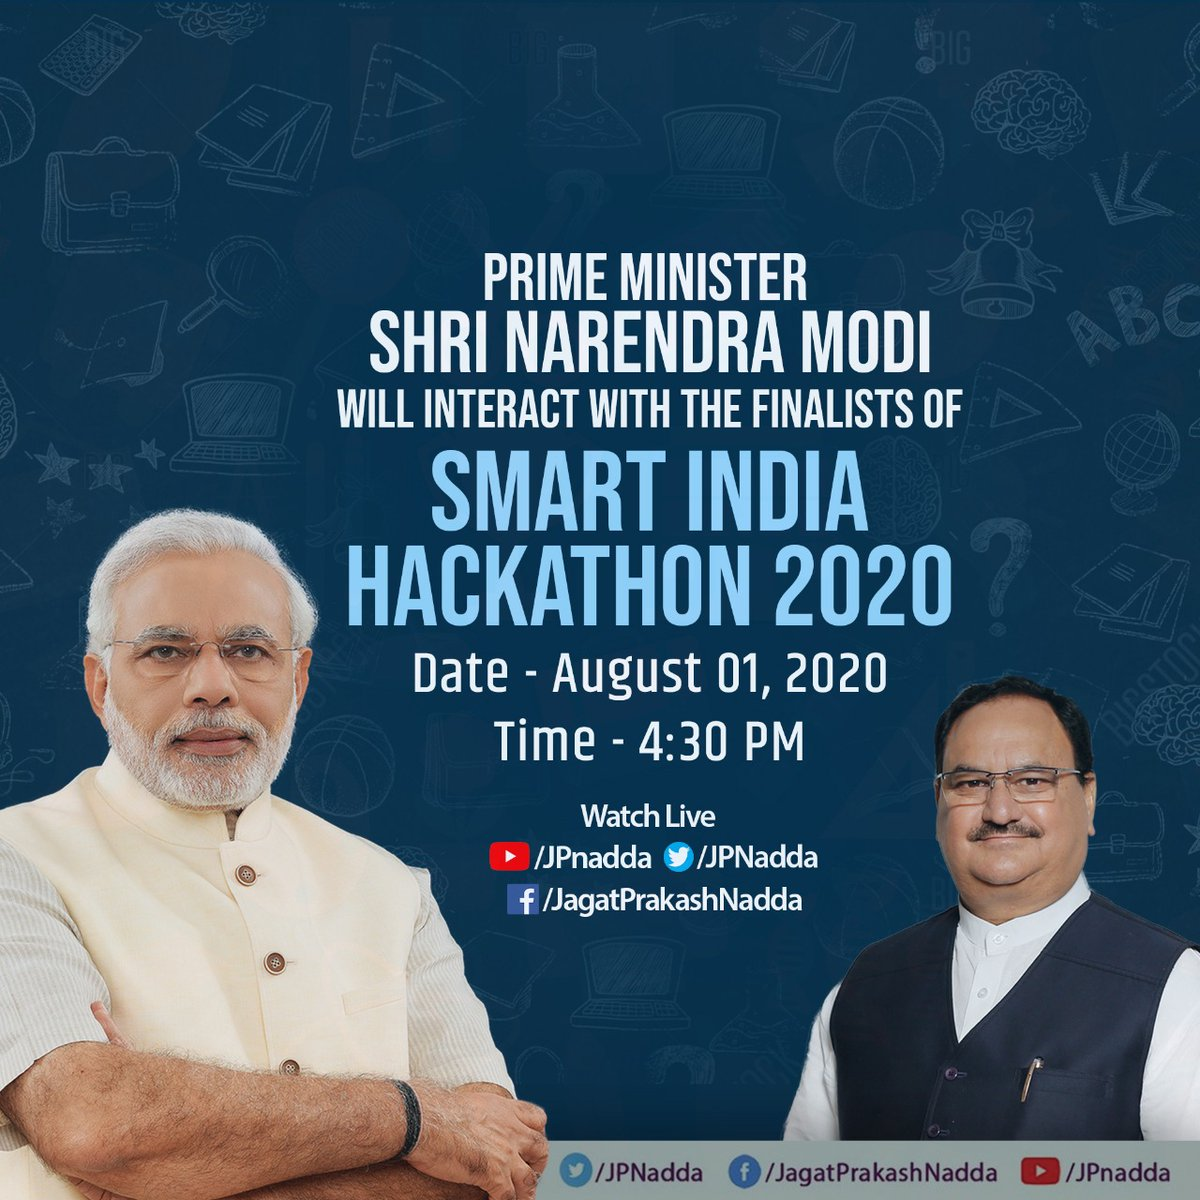 Hon Prime Minister Shri @narendramodi Ji will interact with the Finalists of Smart India Hackathon 2020 at 4:30 PM tomorrow.